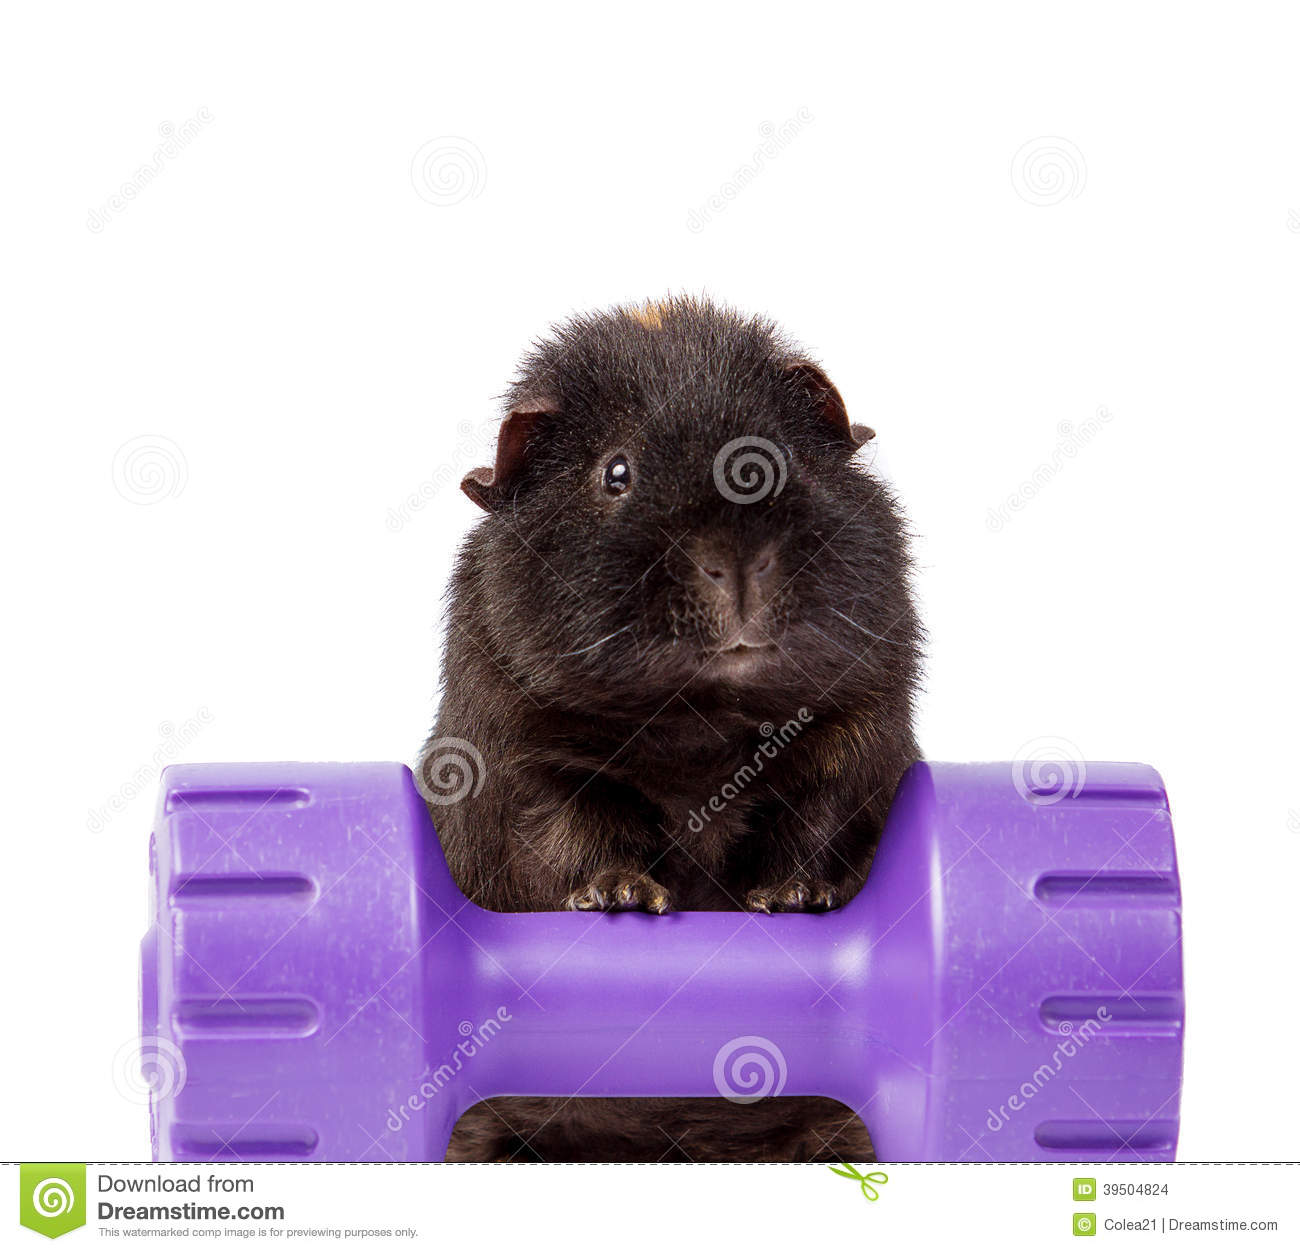 GUINEA PIG ON A WEIGHT DUMBBELL ISOLATED ON WHITE